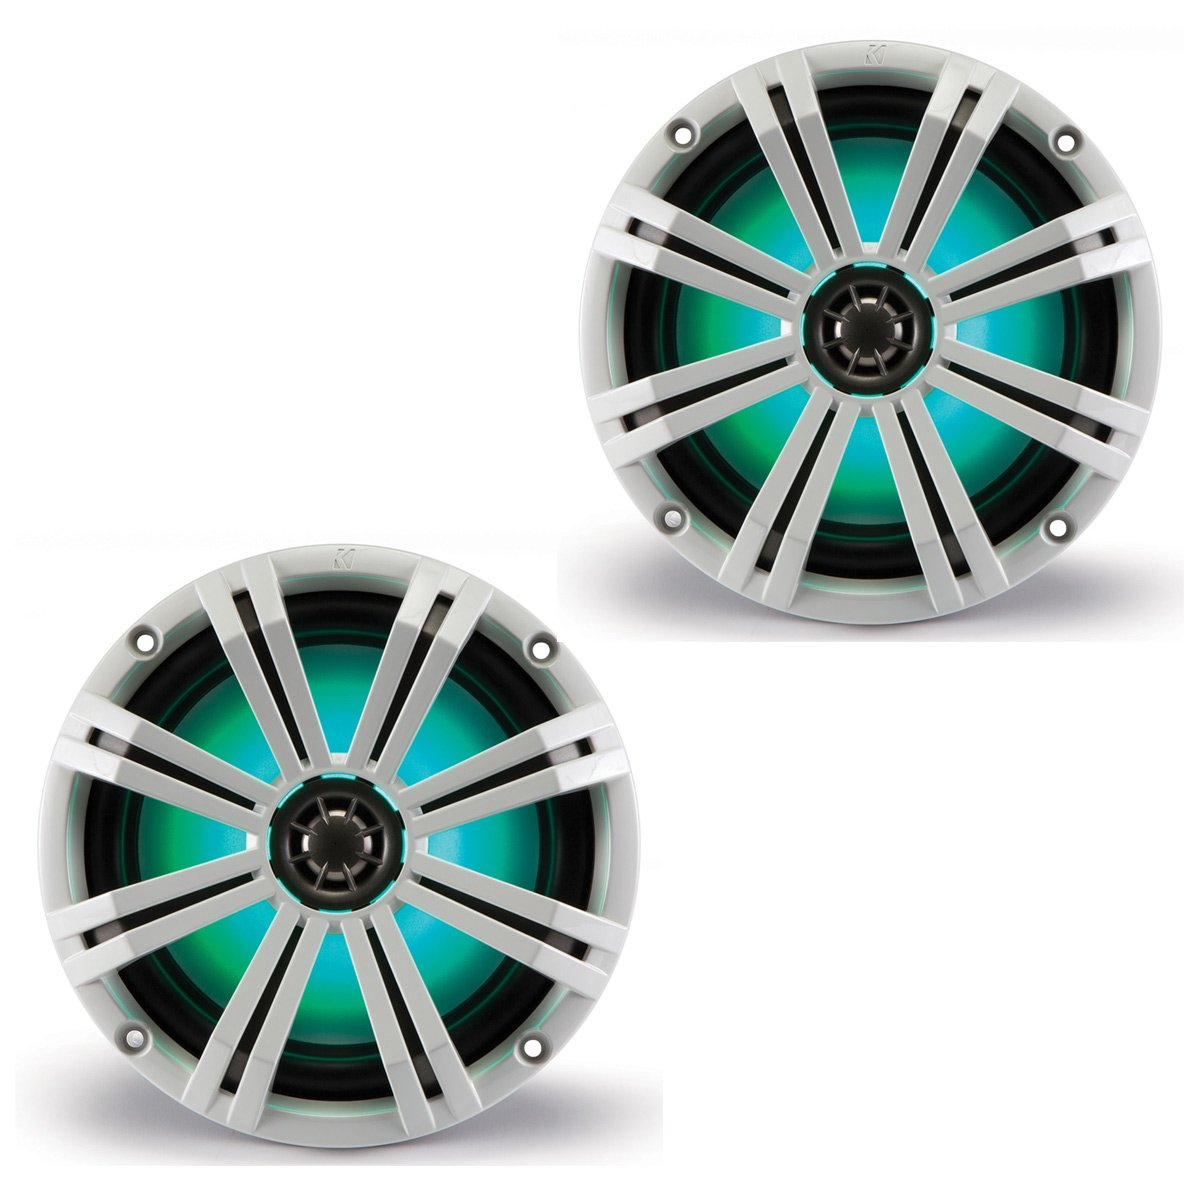 KM8 8-INCH (160mm) Marine Coaxial Speakerswith 1'' tweeters,LED Charcoal and White Grilles,4-OHM